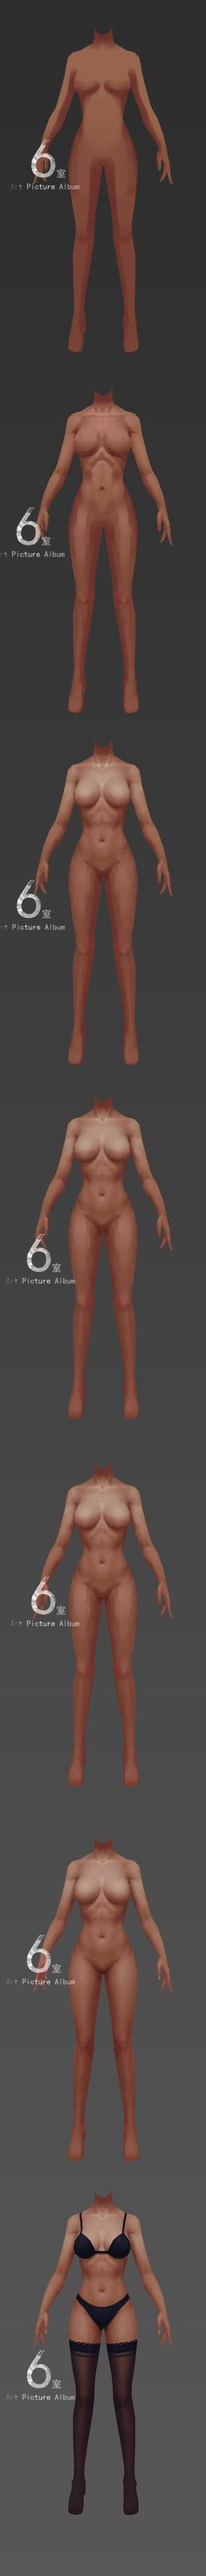 Female body anatomy paint. ¶ get more @rohitanshu ¶